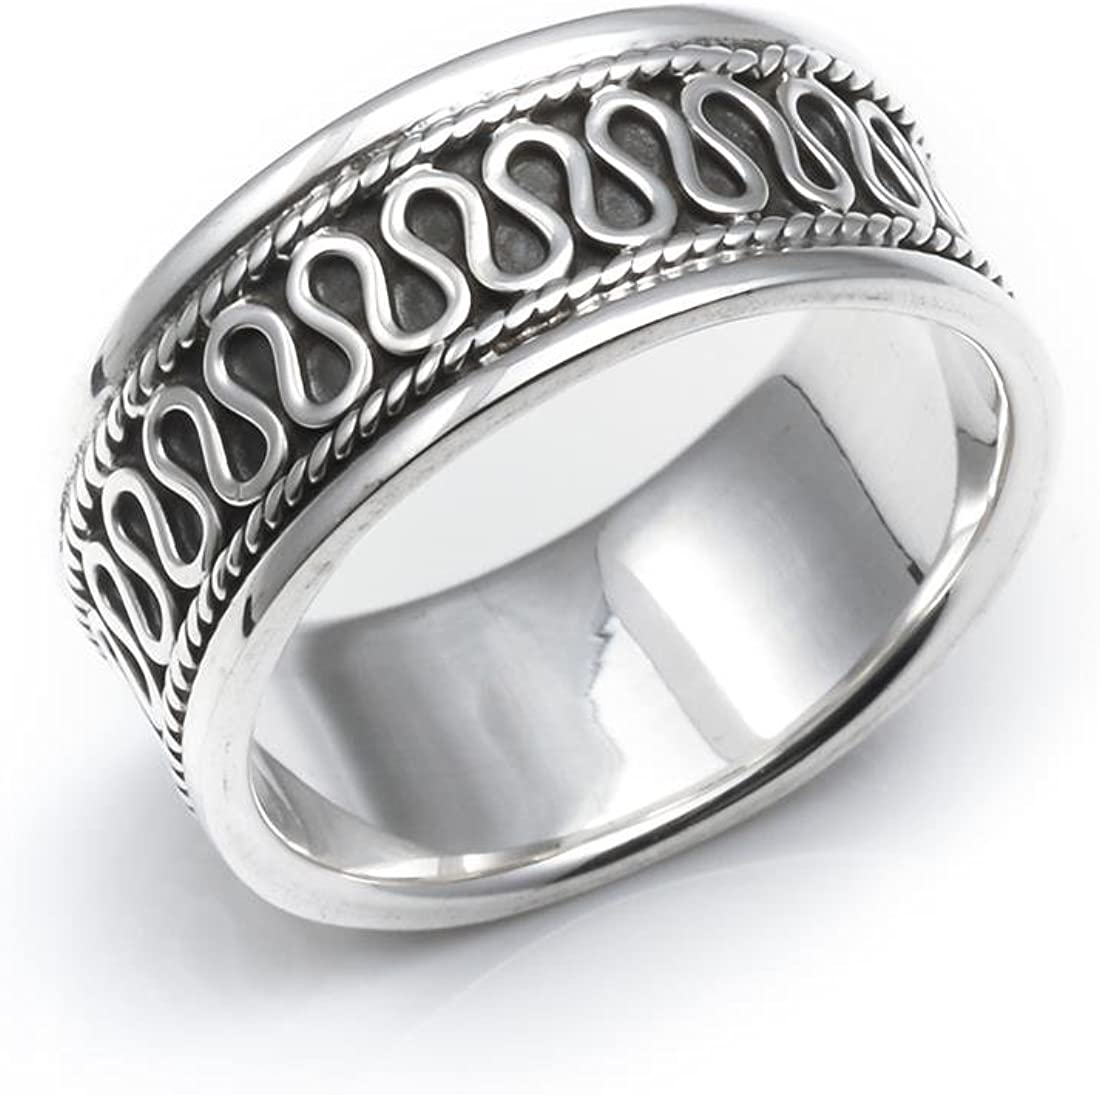 Silverly OFFicial store Women's Washington Mall Men's .925 Sterling Silver 8 Scroll mm Bal Rope